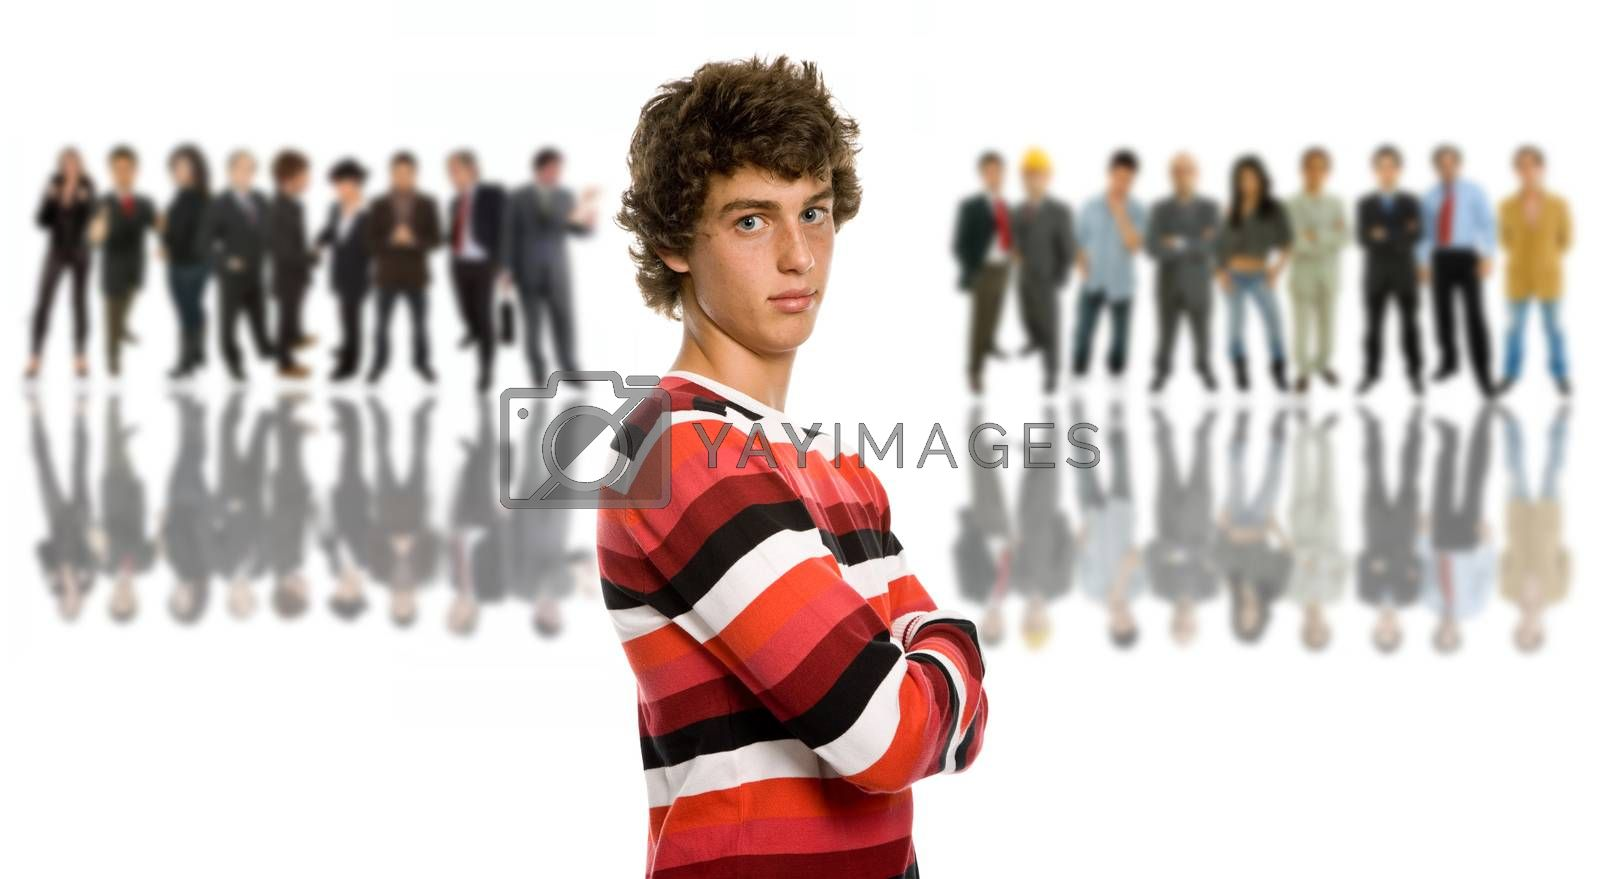 an young man in front of a group of people, isolated